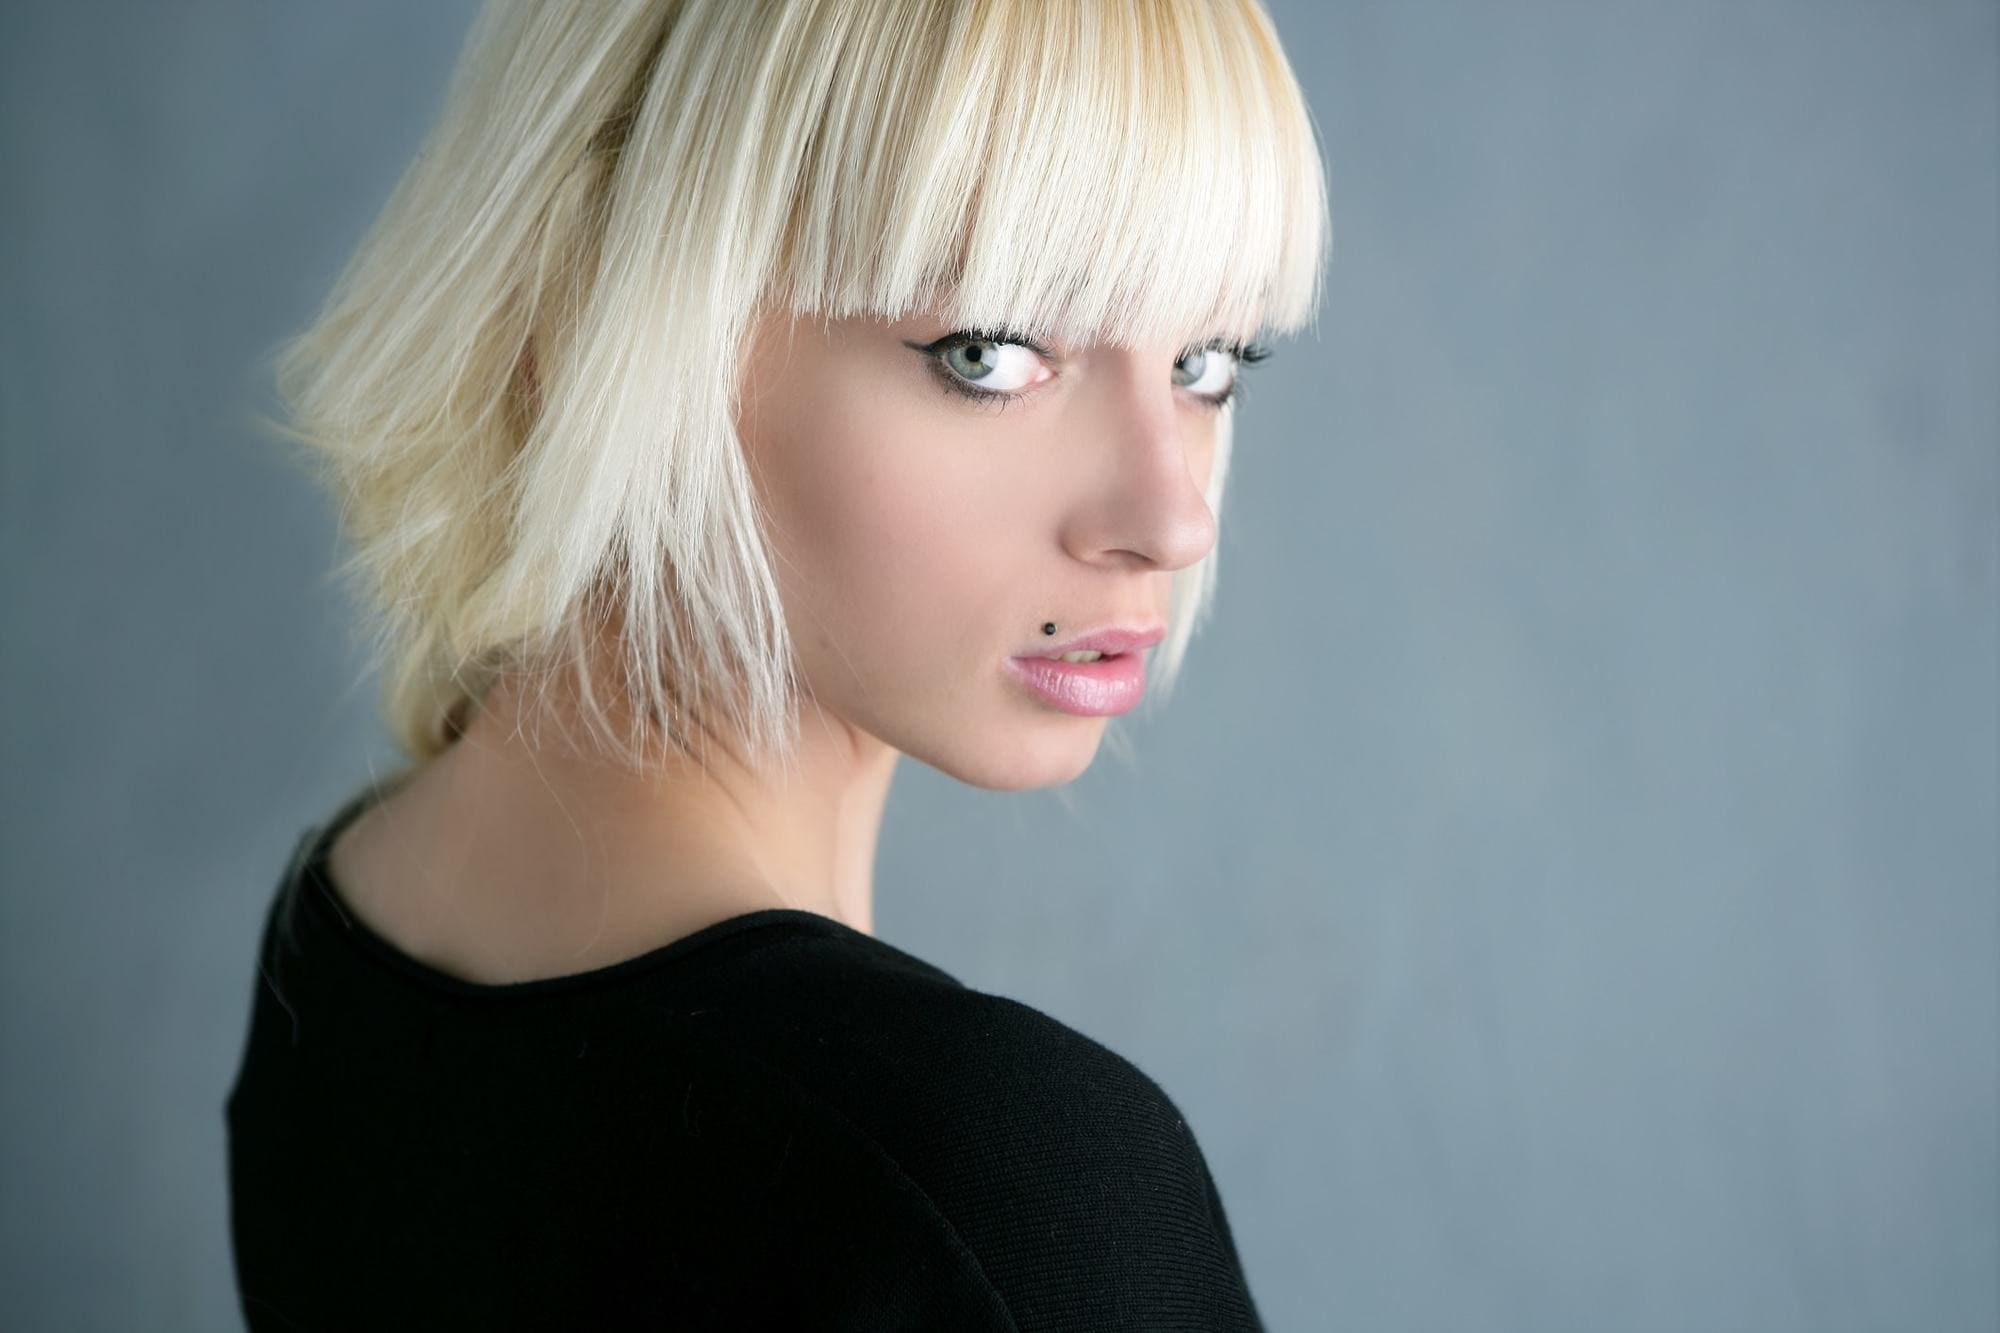 Latest Edgy Short Bangs For Angled Faces-20 Looks to Try 8